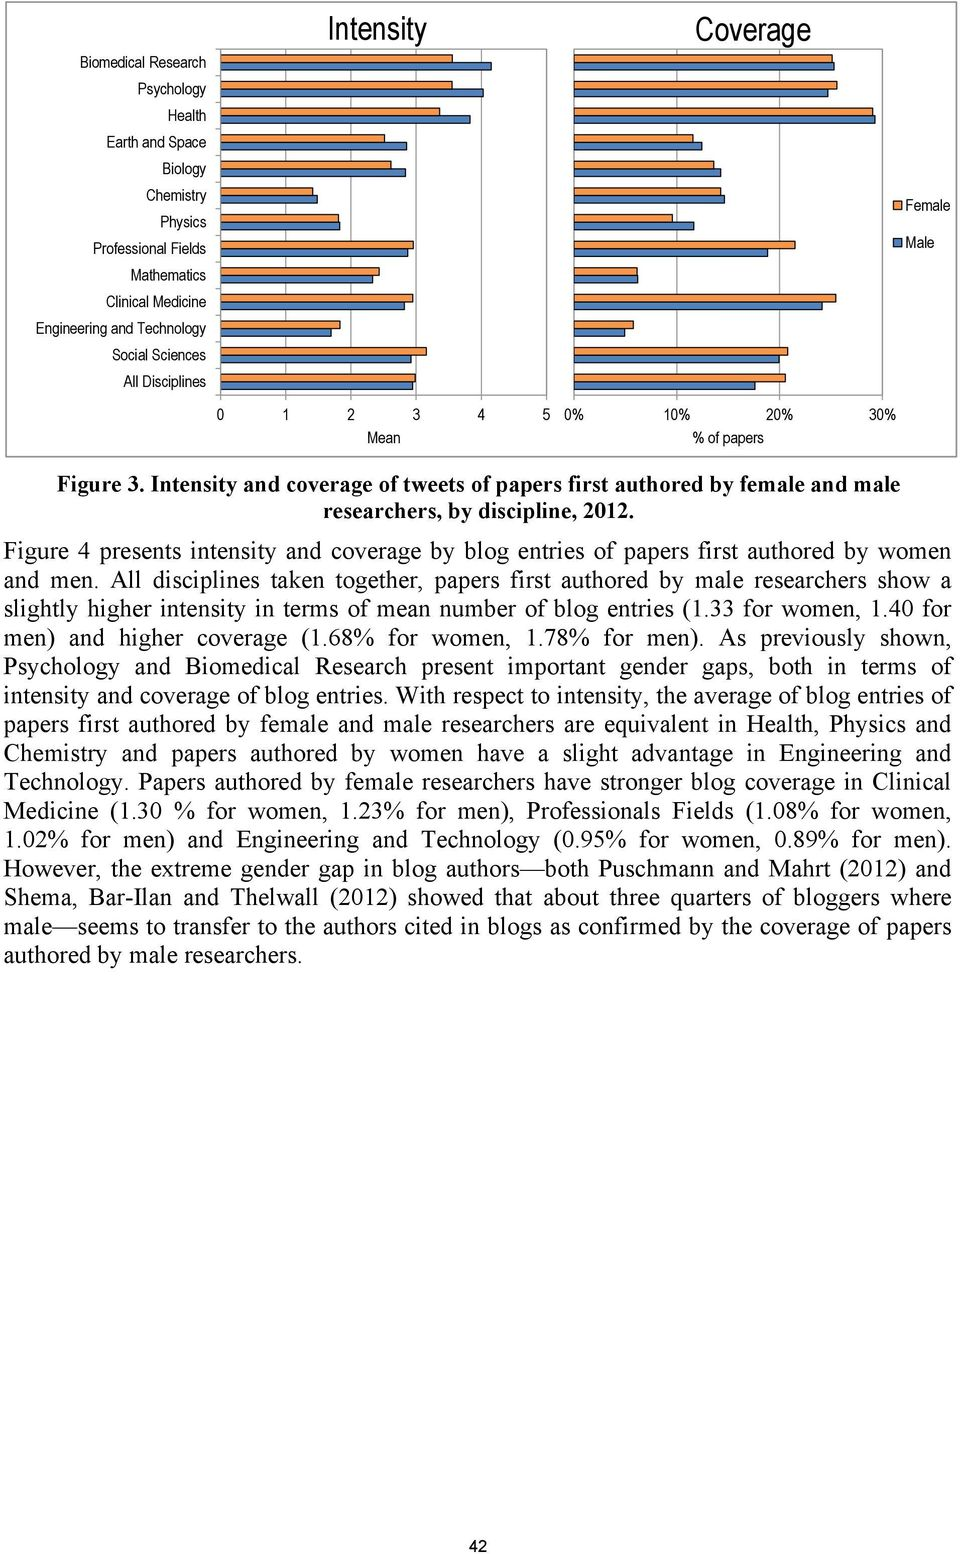 Figure 4 presents intensity and coverage by blog entries of papers first authored by women and men.